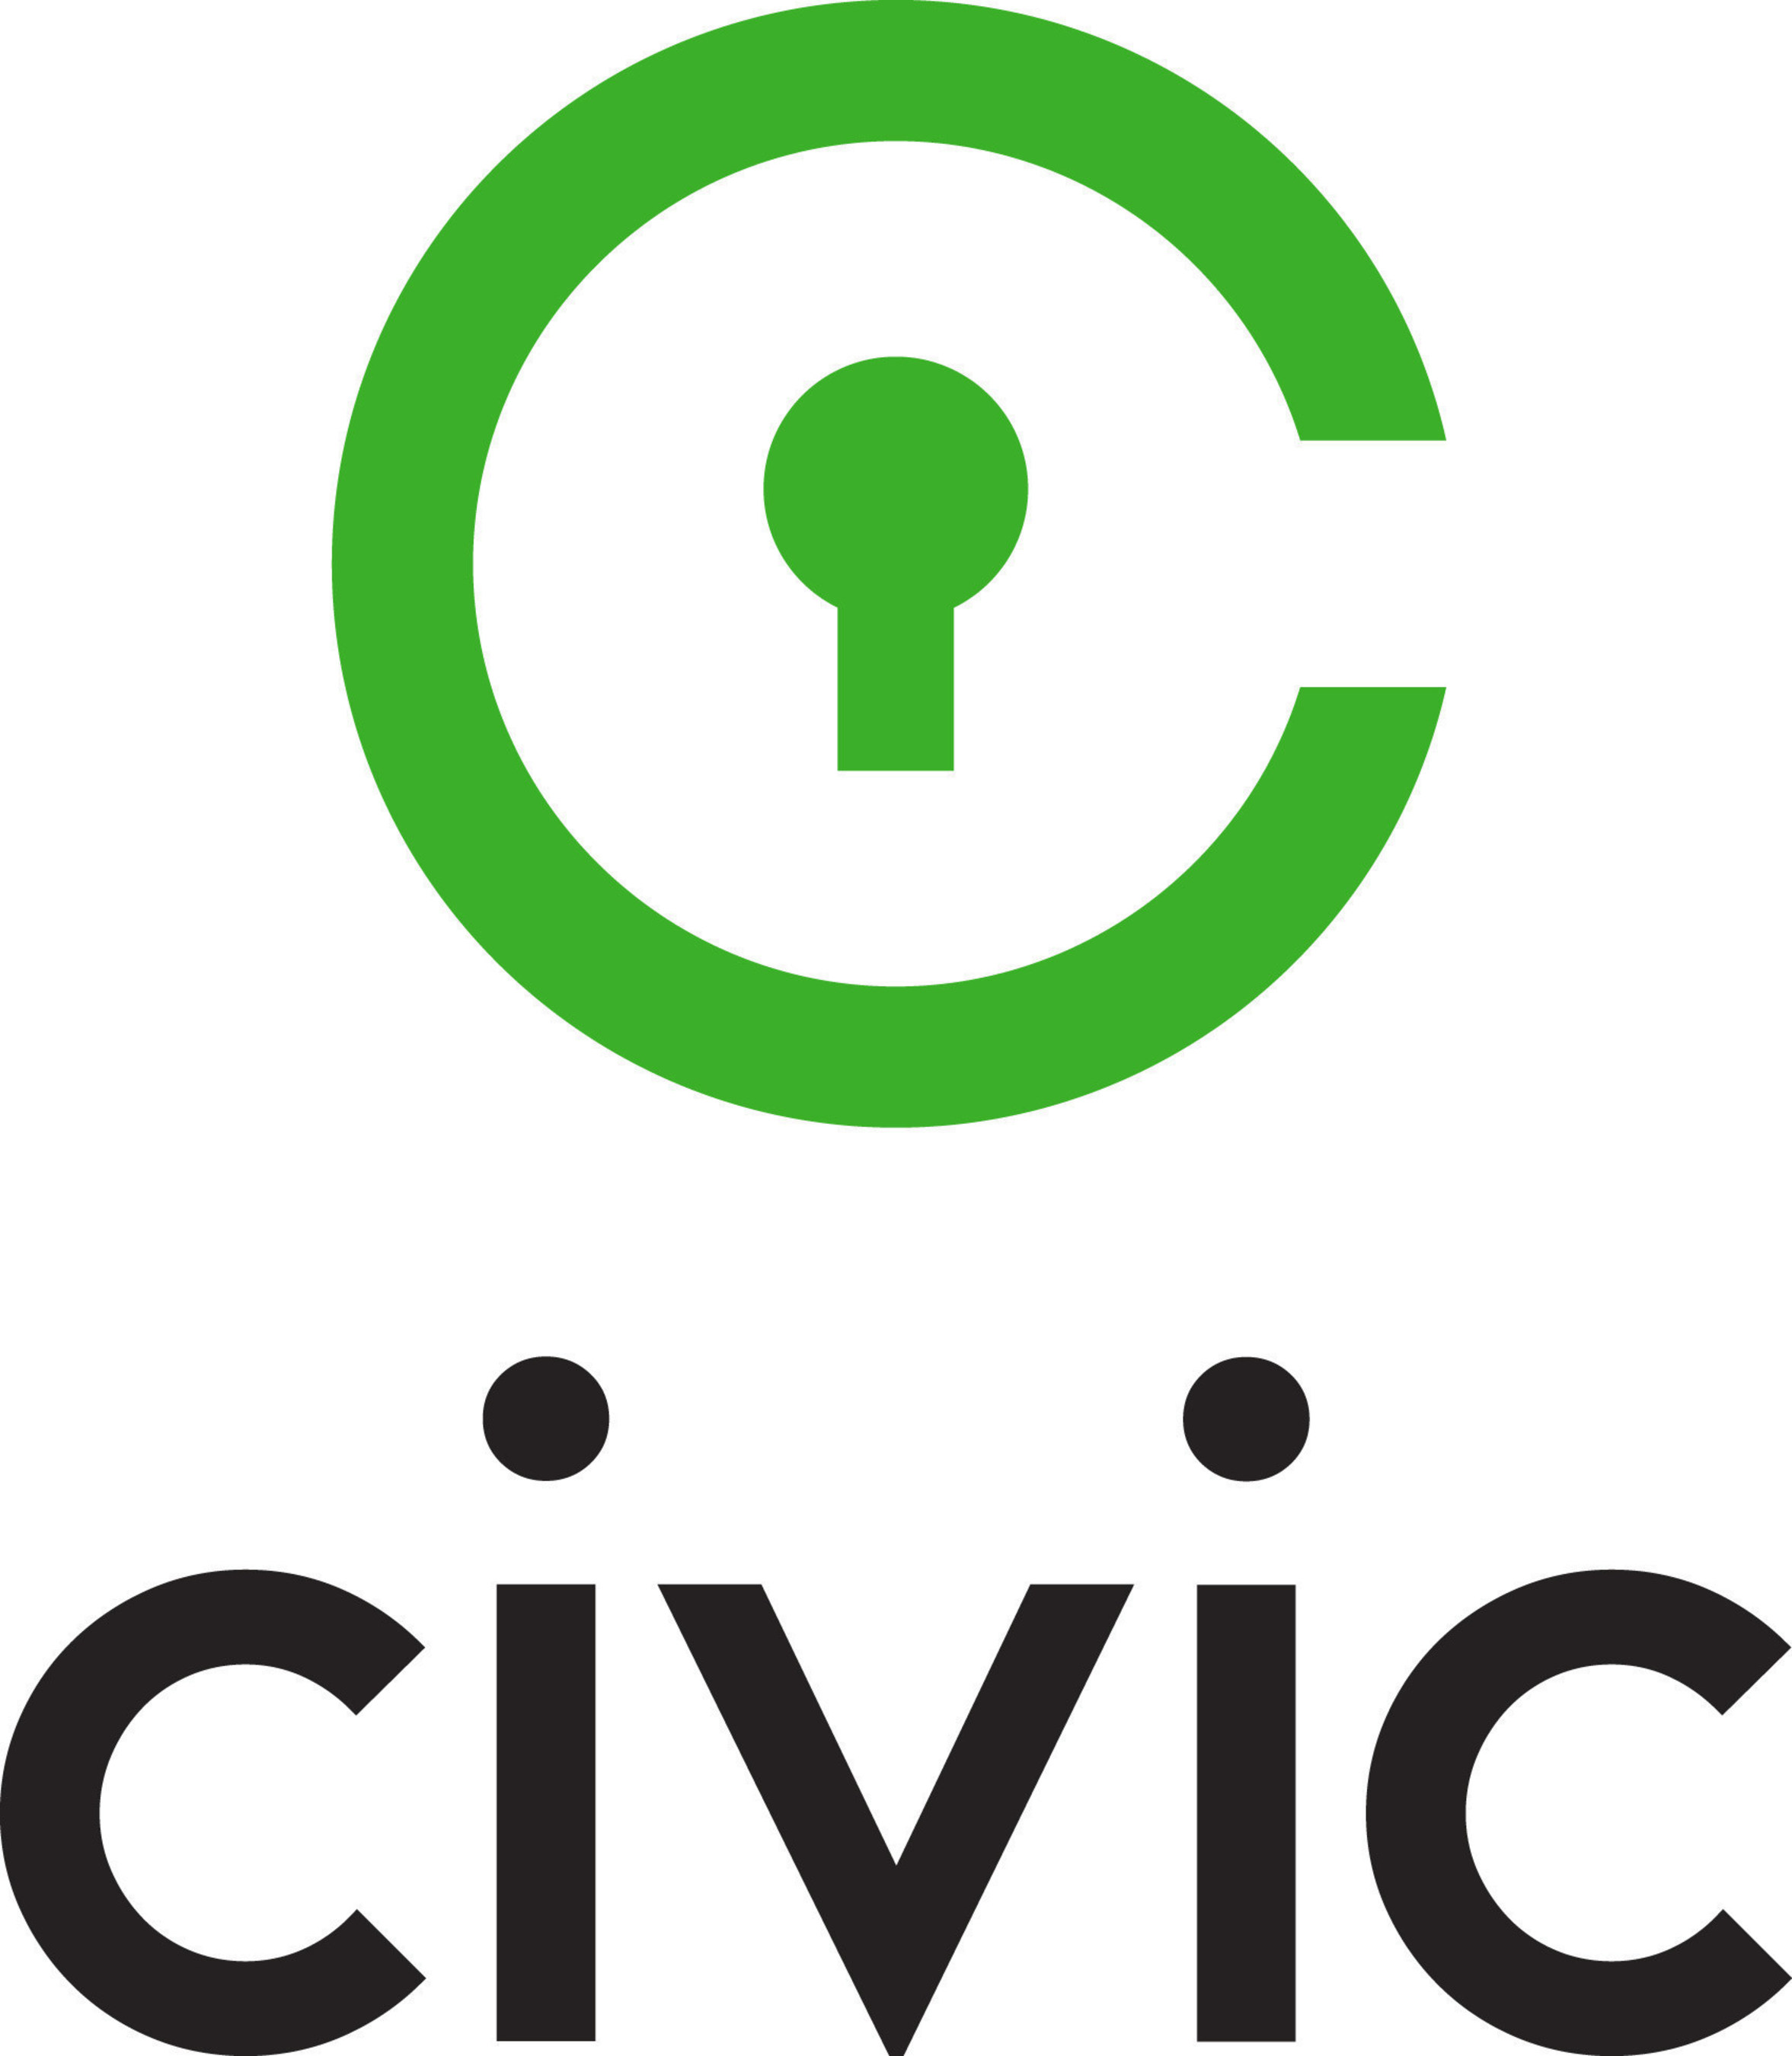 Civic, an identity protection network, today announced its official launch and public beta of its app, which will help Americans manage their identity and stop identity fraud before it happens.